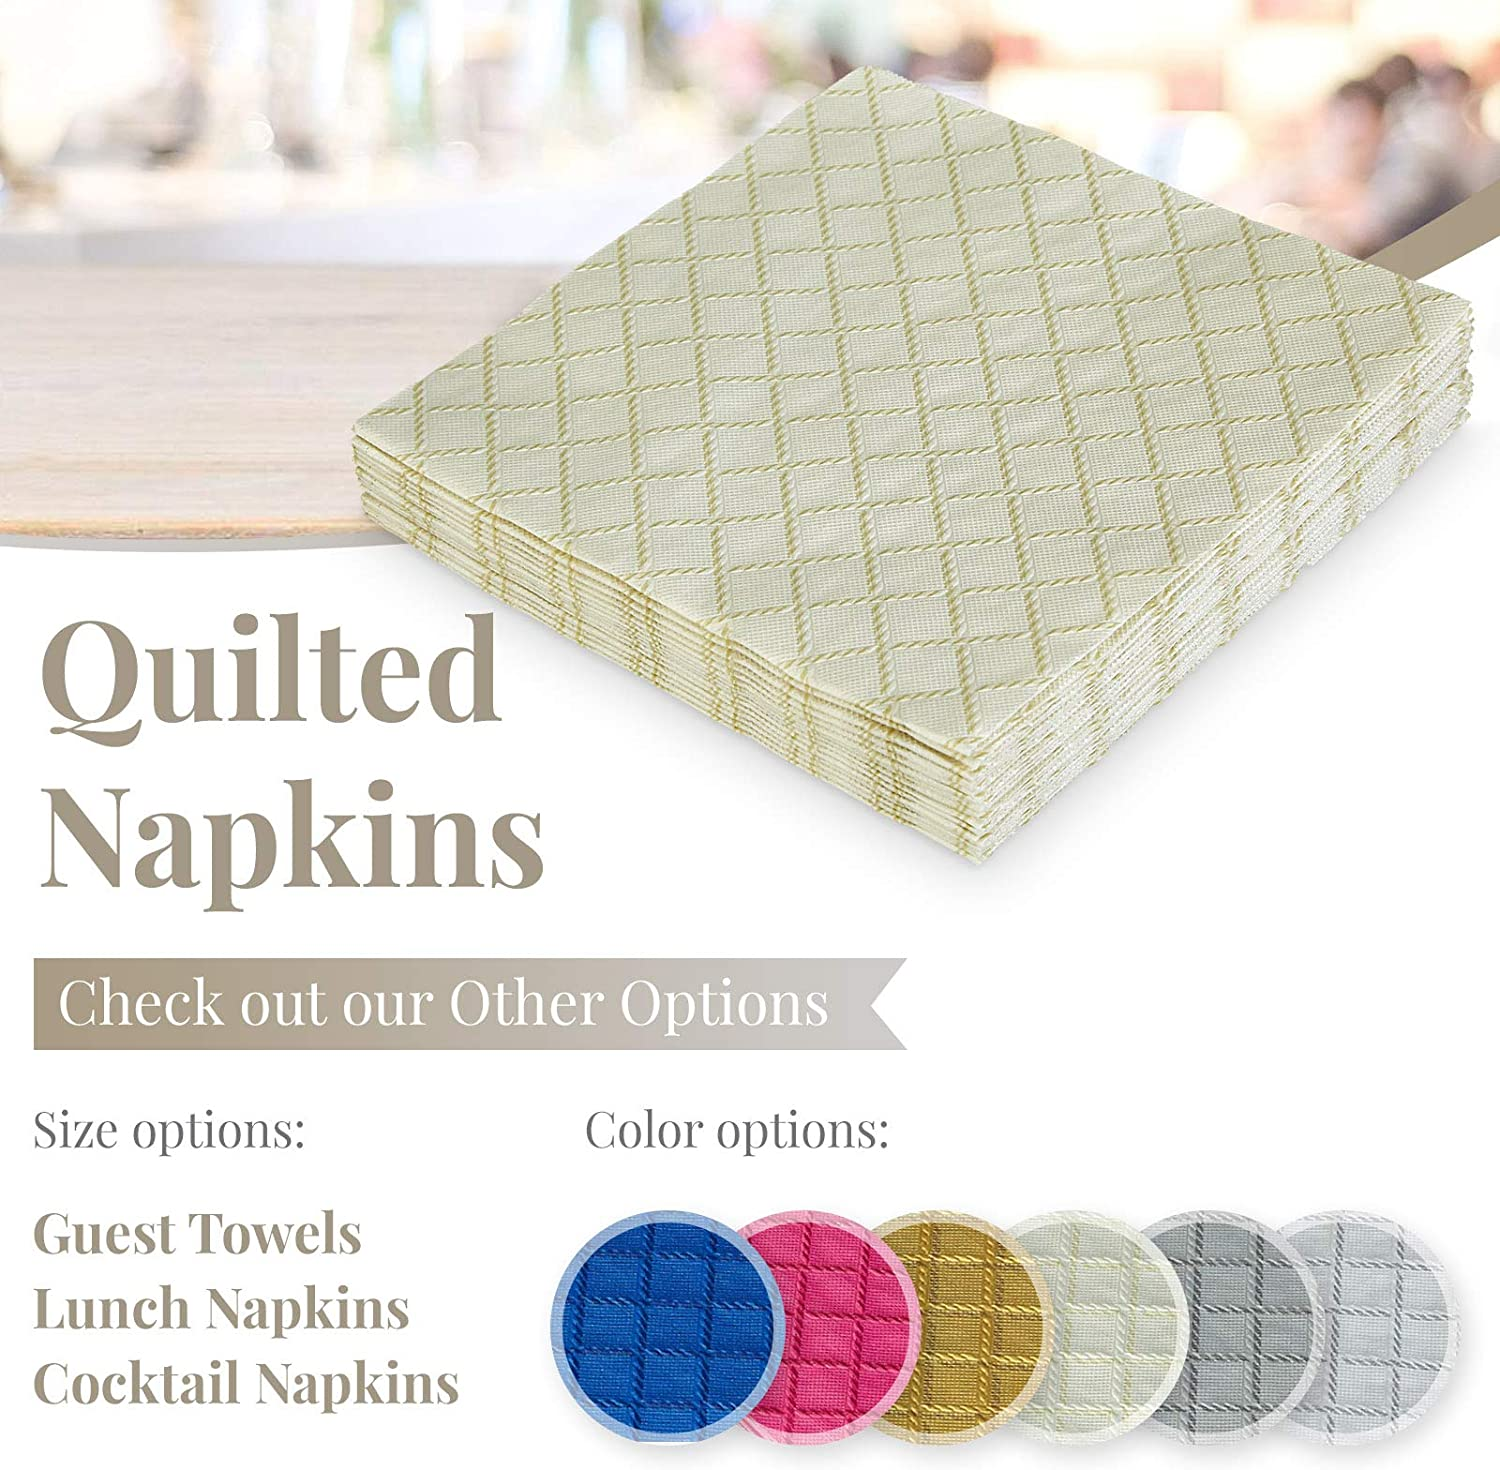 European Made for Upscale Wedding and Dining Gold 16 pc DISPOSABLE QUILTED COCKTAIL NAPKINS